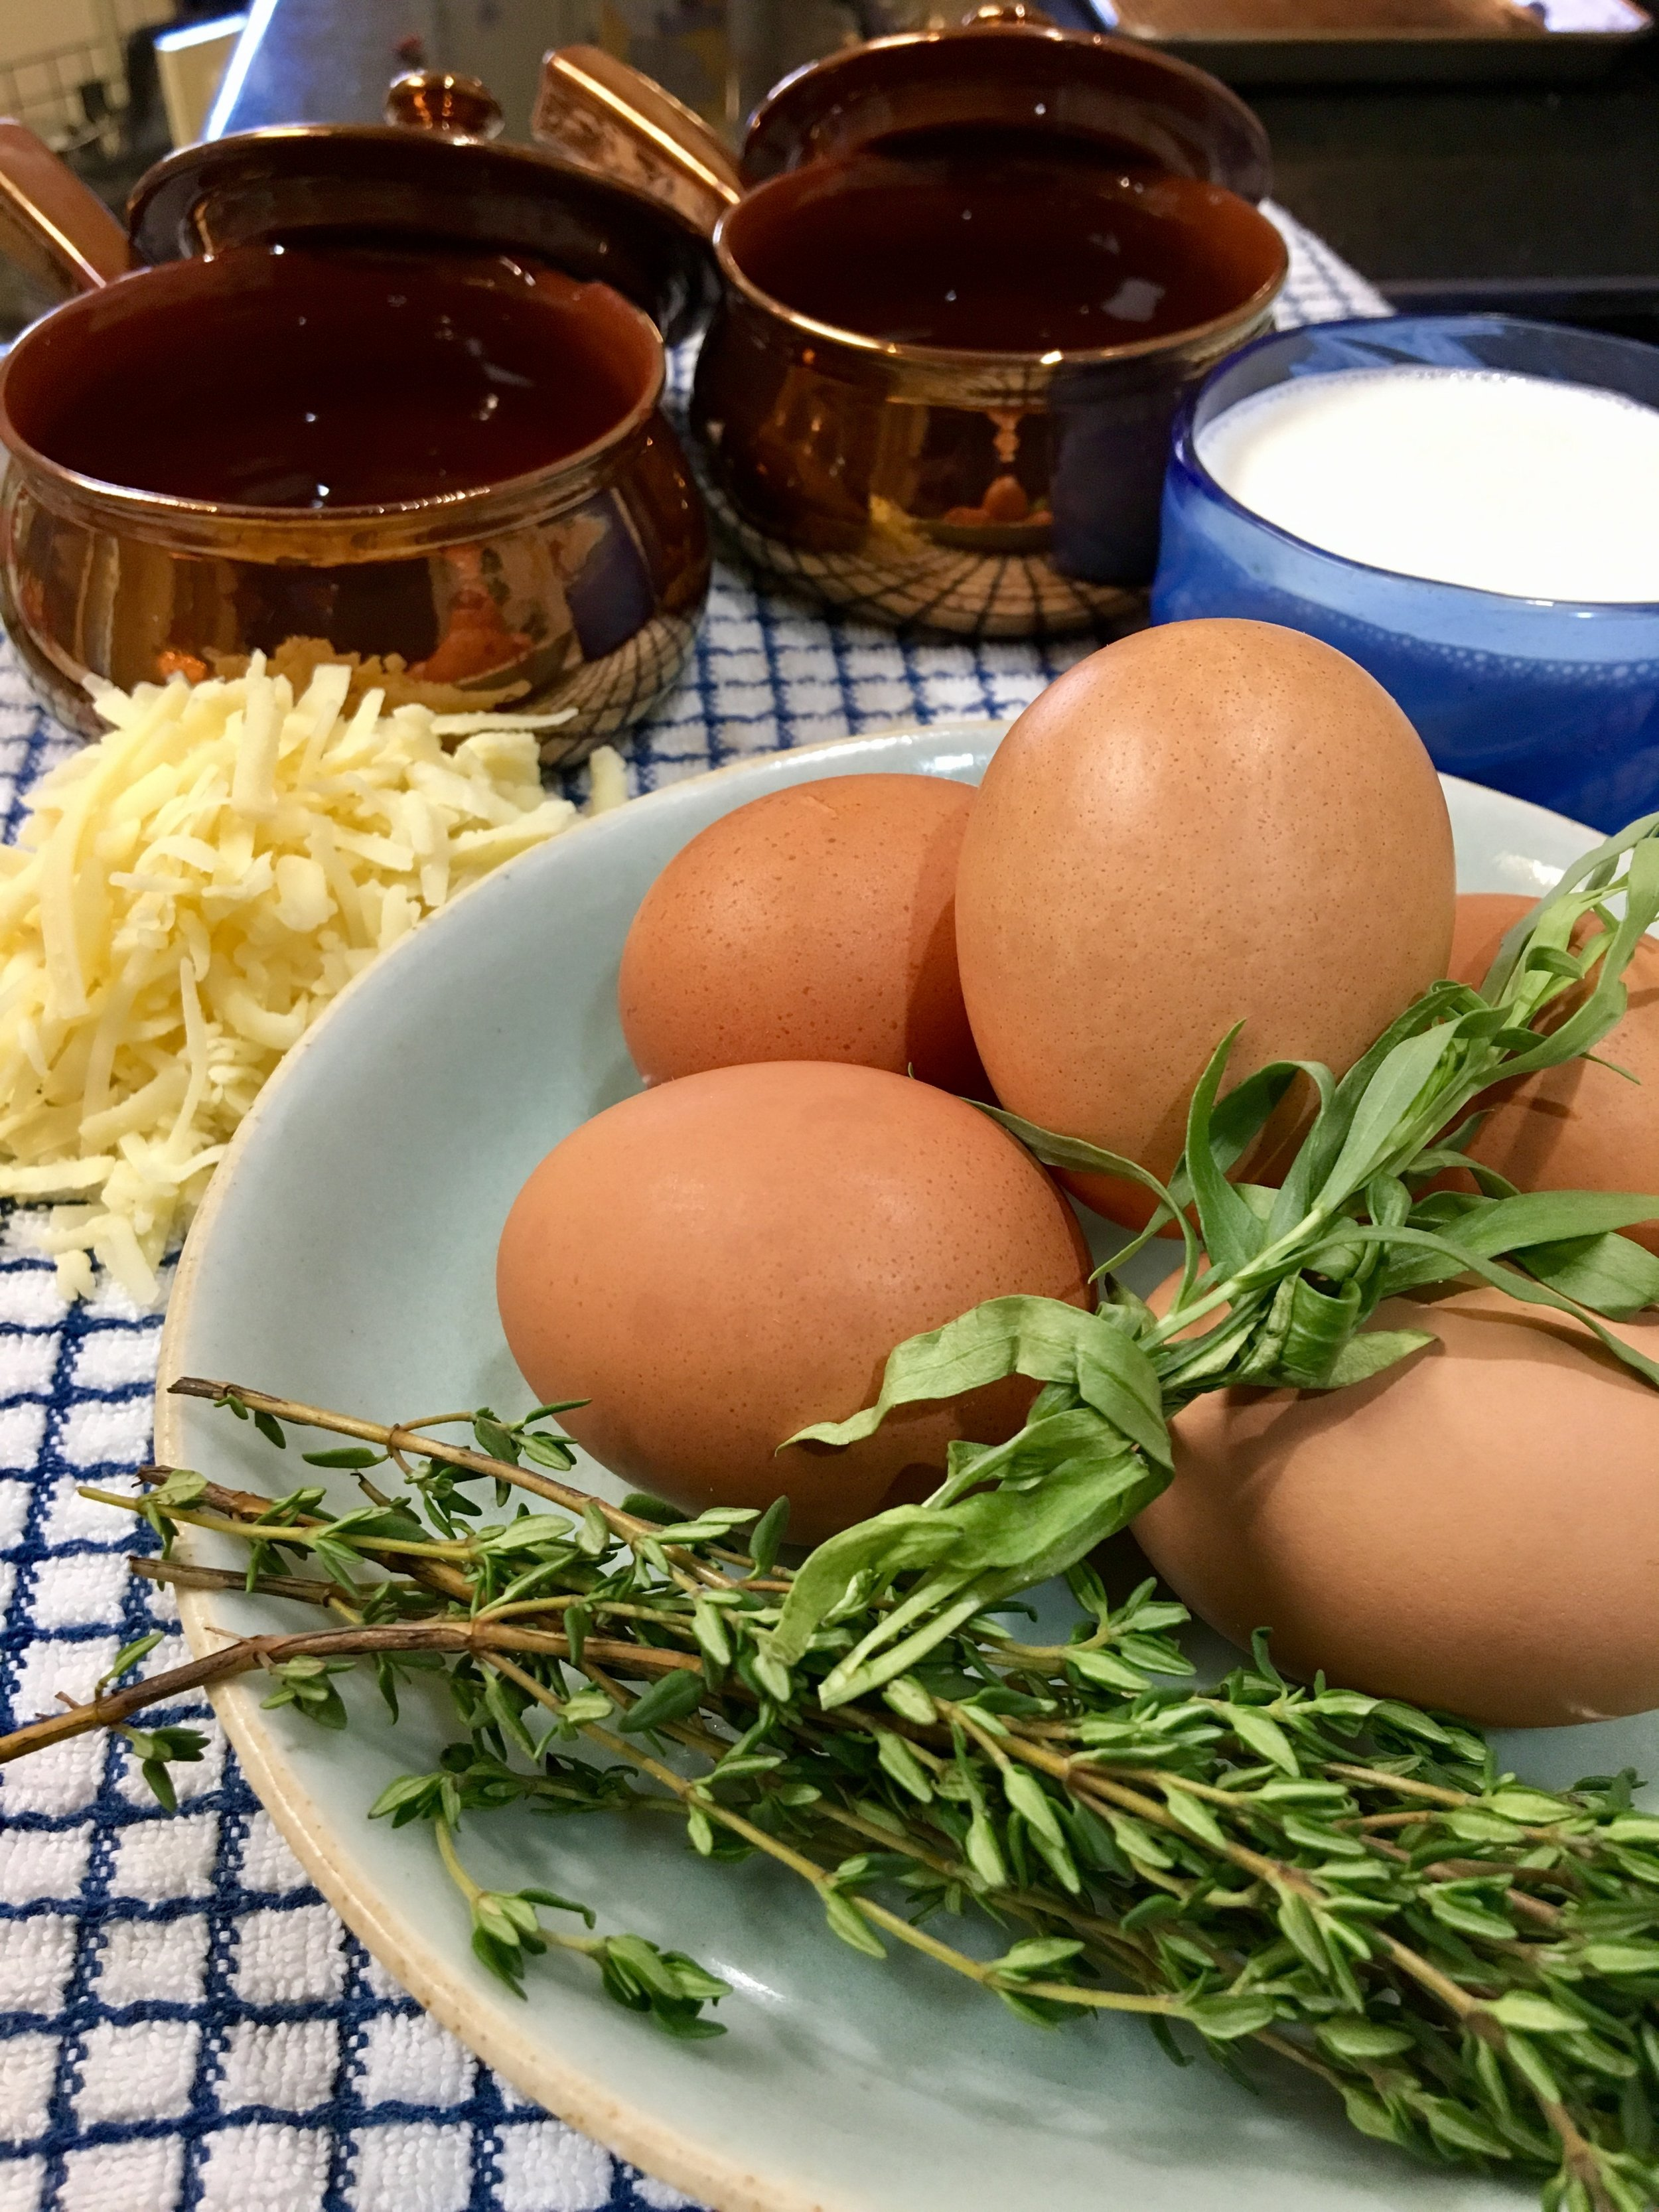 Mise en Place : Gathering everything together,and prepped, to make your dish